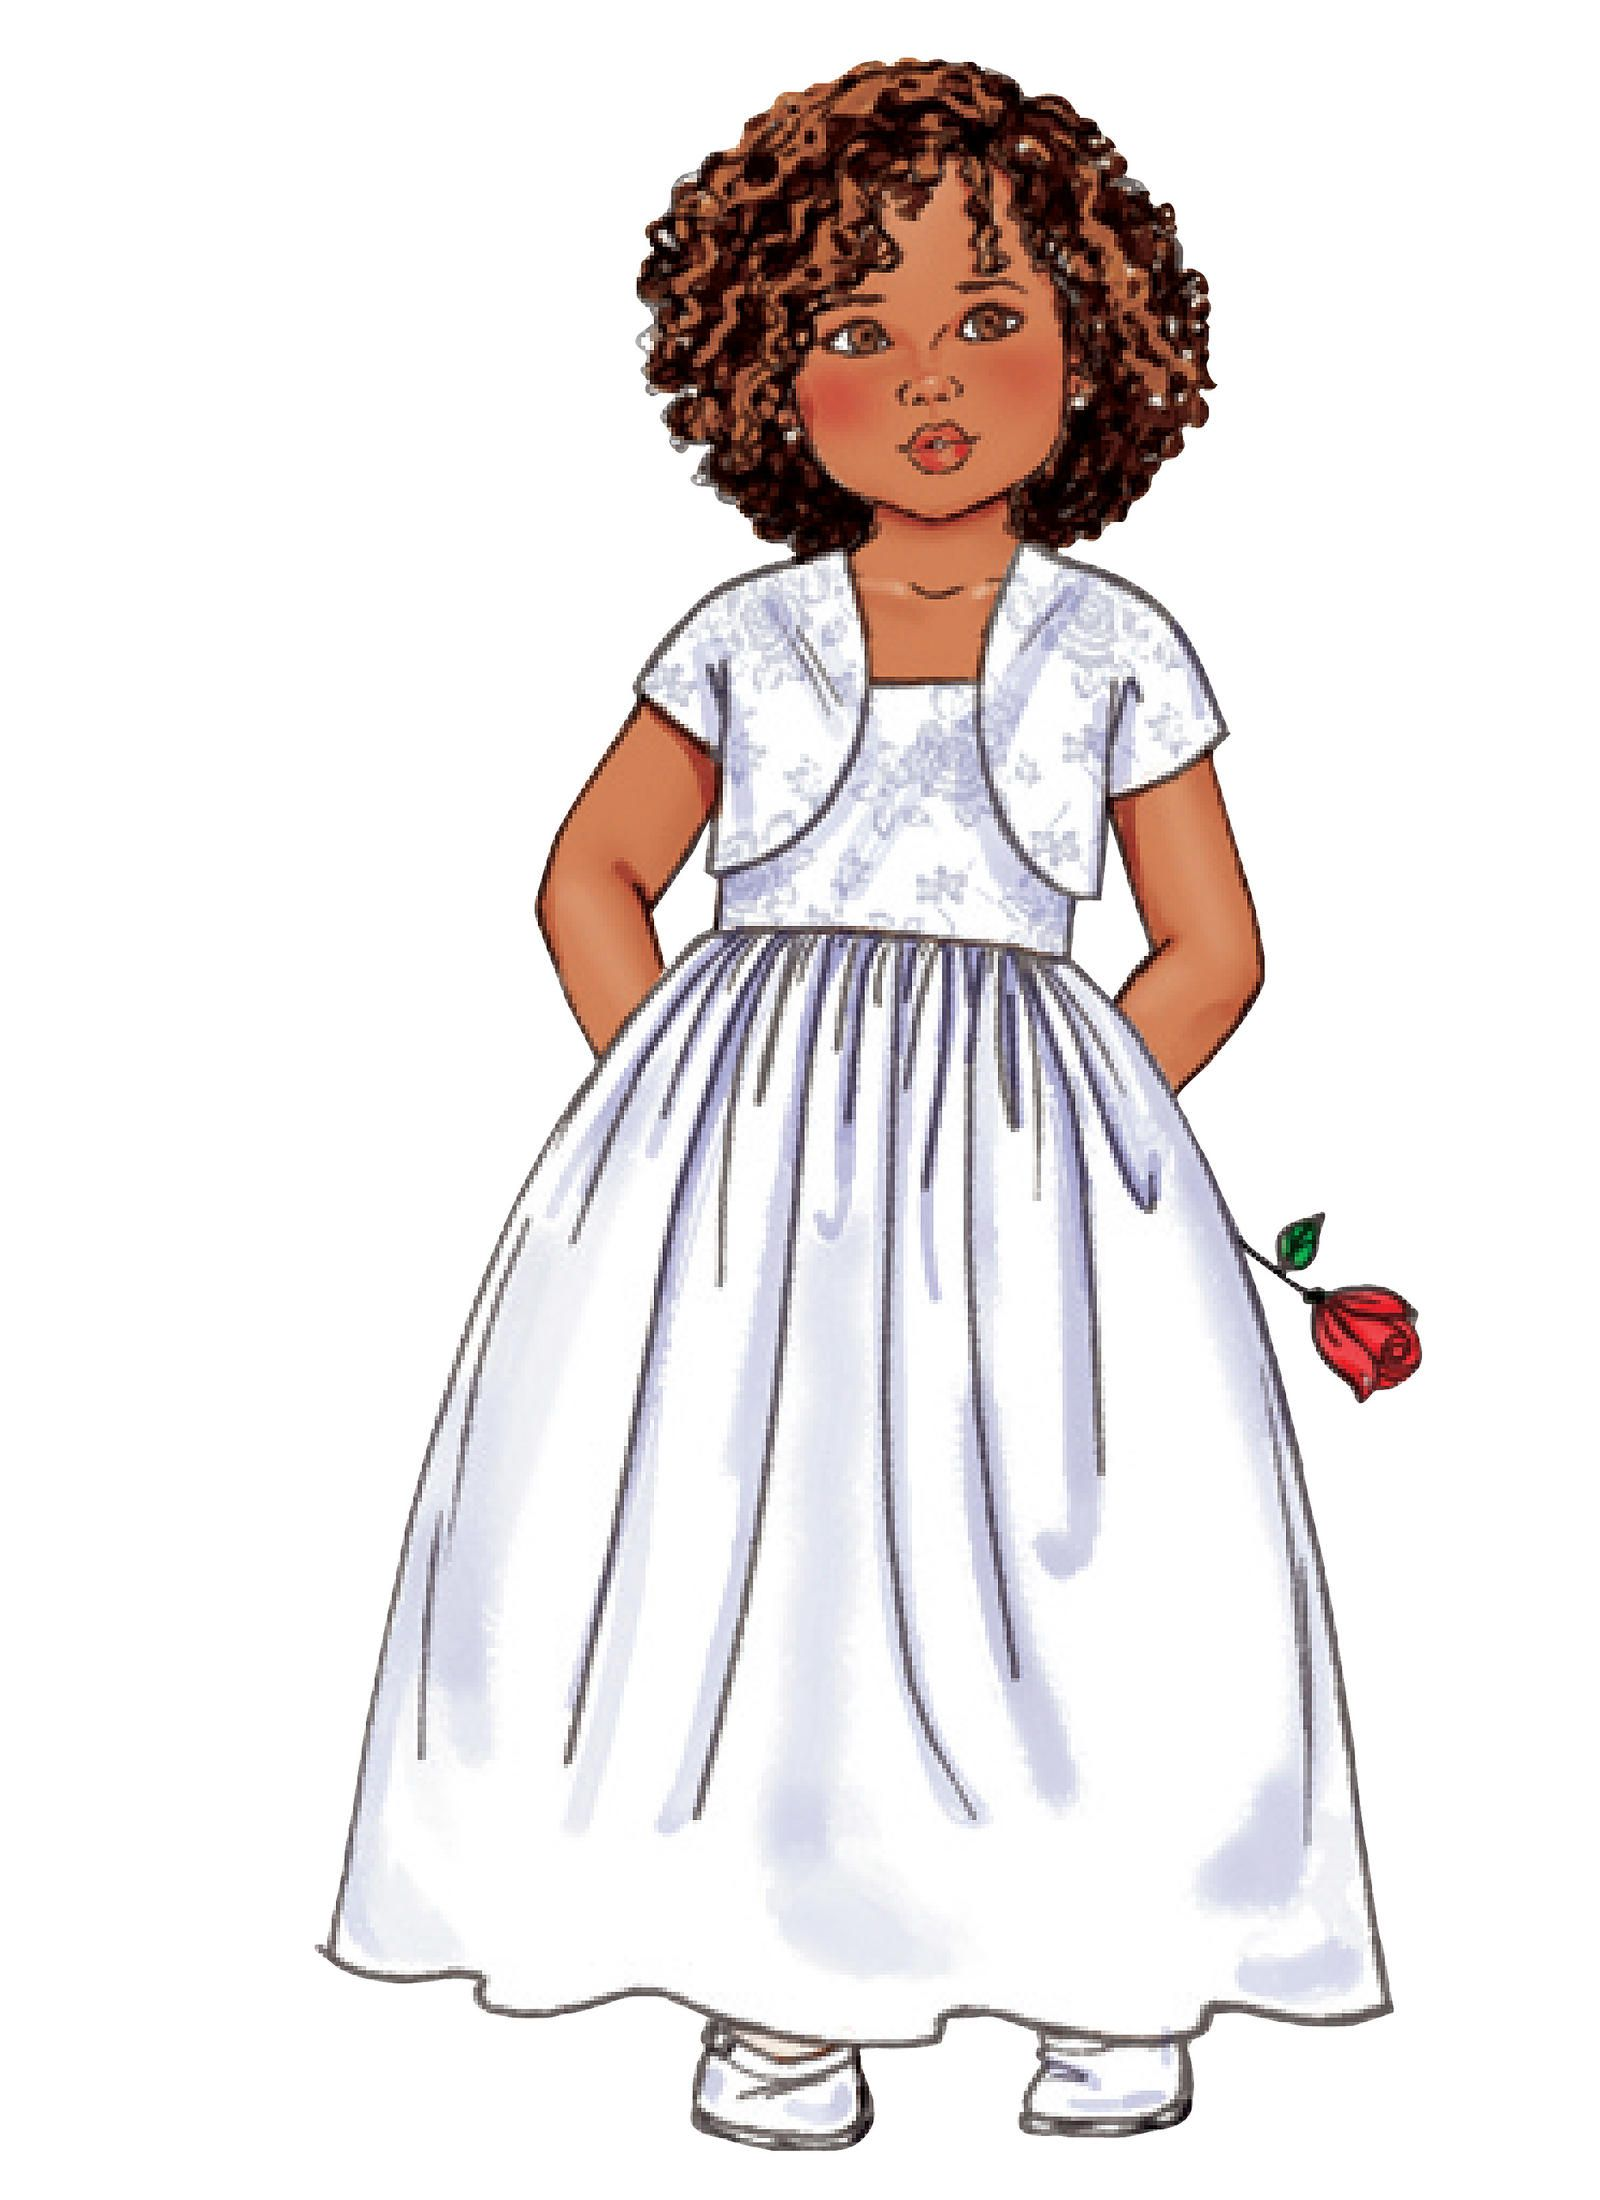 Girls bridesmaid dress patterns image collections braidsmaid pin by denise hadley on tots and babies pinterest sewing sewing pattern for childrens girls bridesmaid ombrellifo Gallery